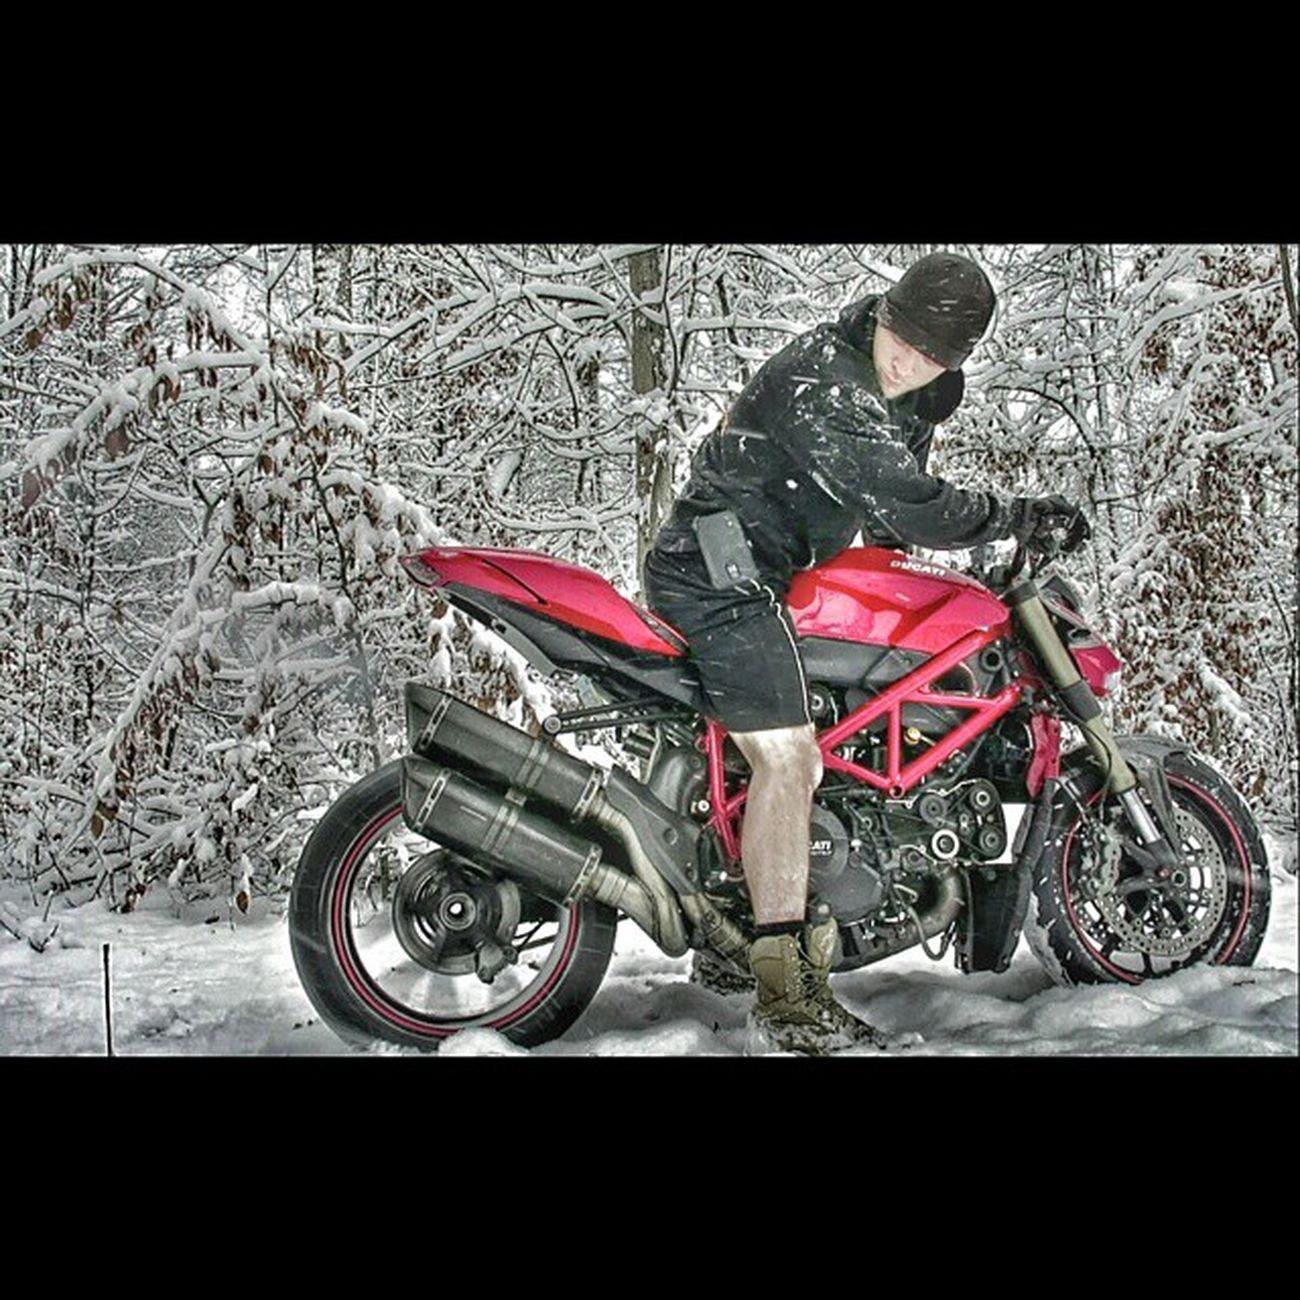 Maybe a Ducati wasnt made for playin in the snow or maybe it was. Either way it was crazy fun. Burnouts Drifts Ducati Ducatistreetfighter